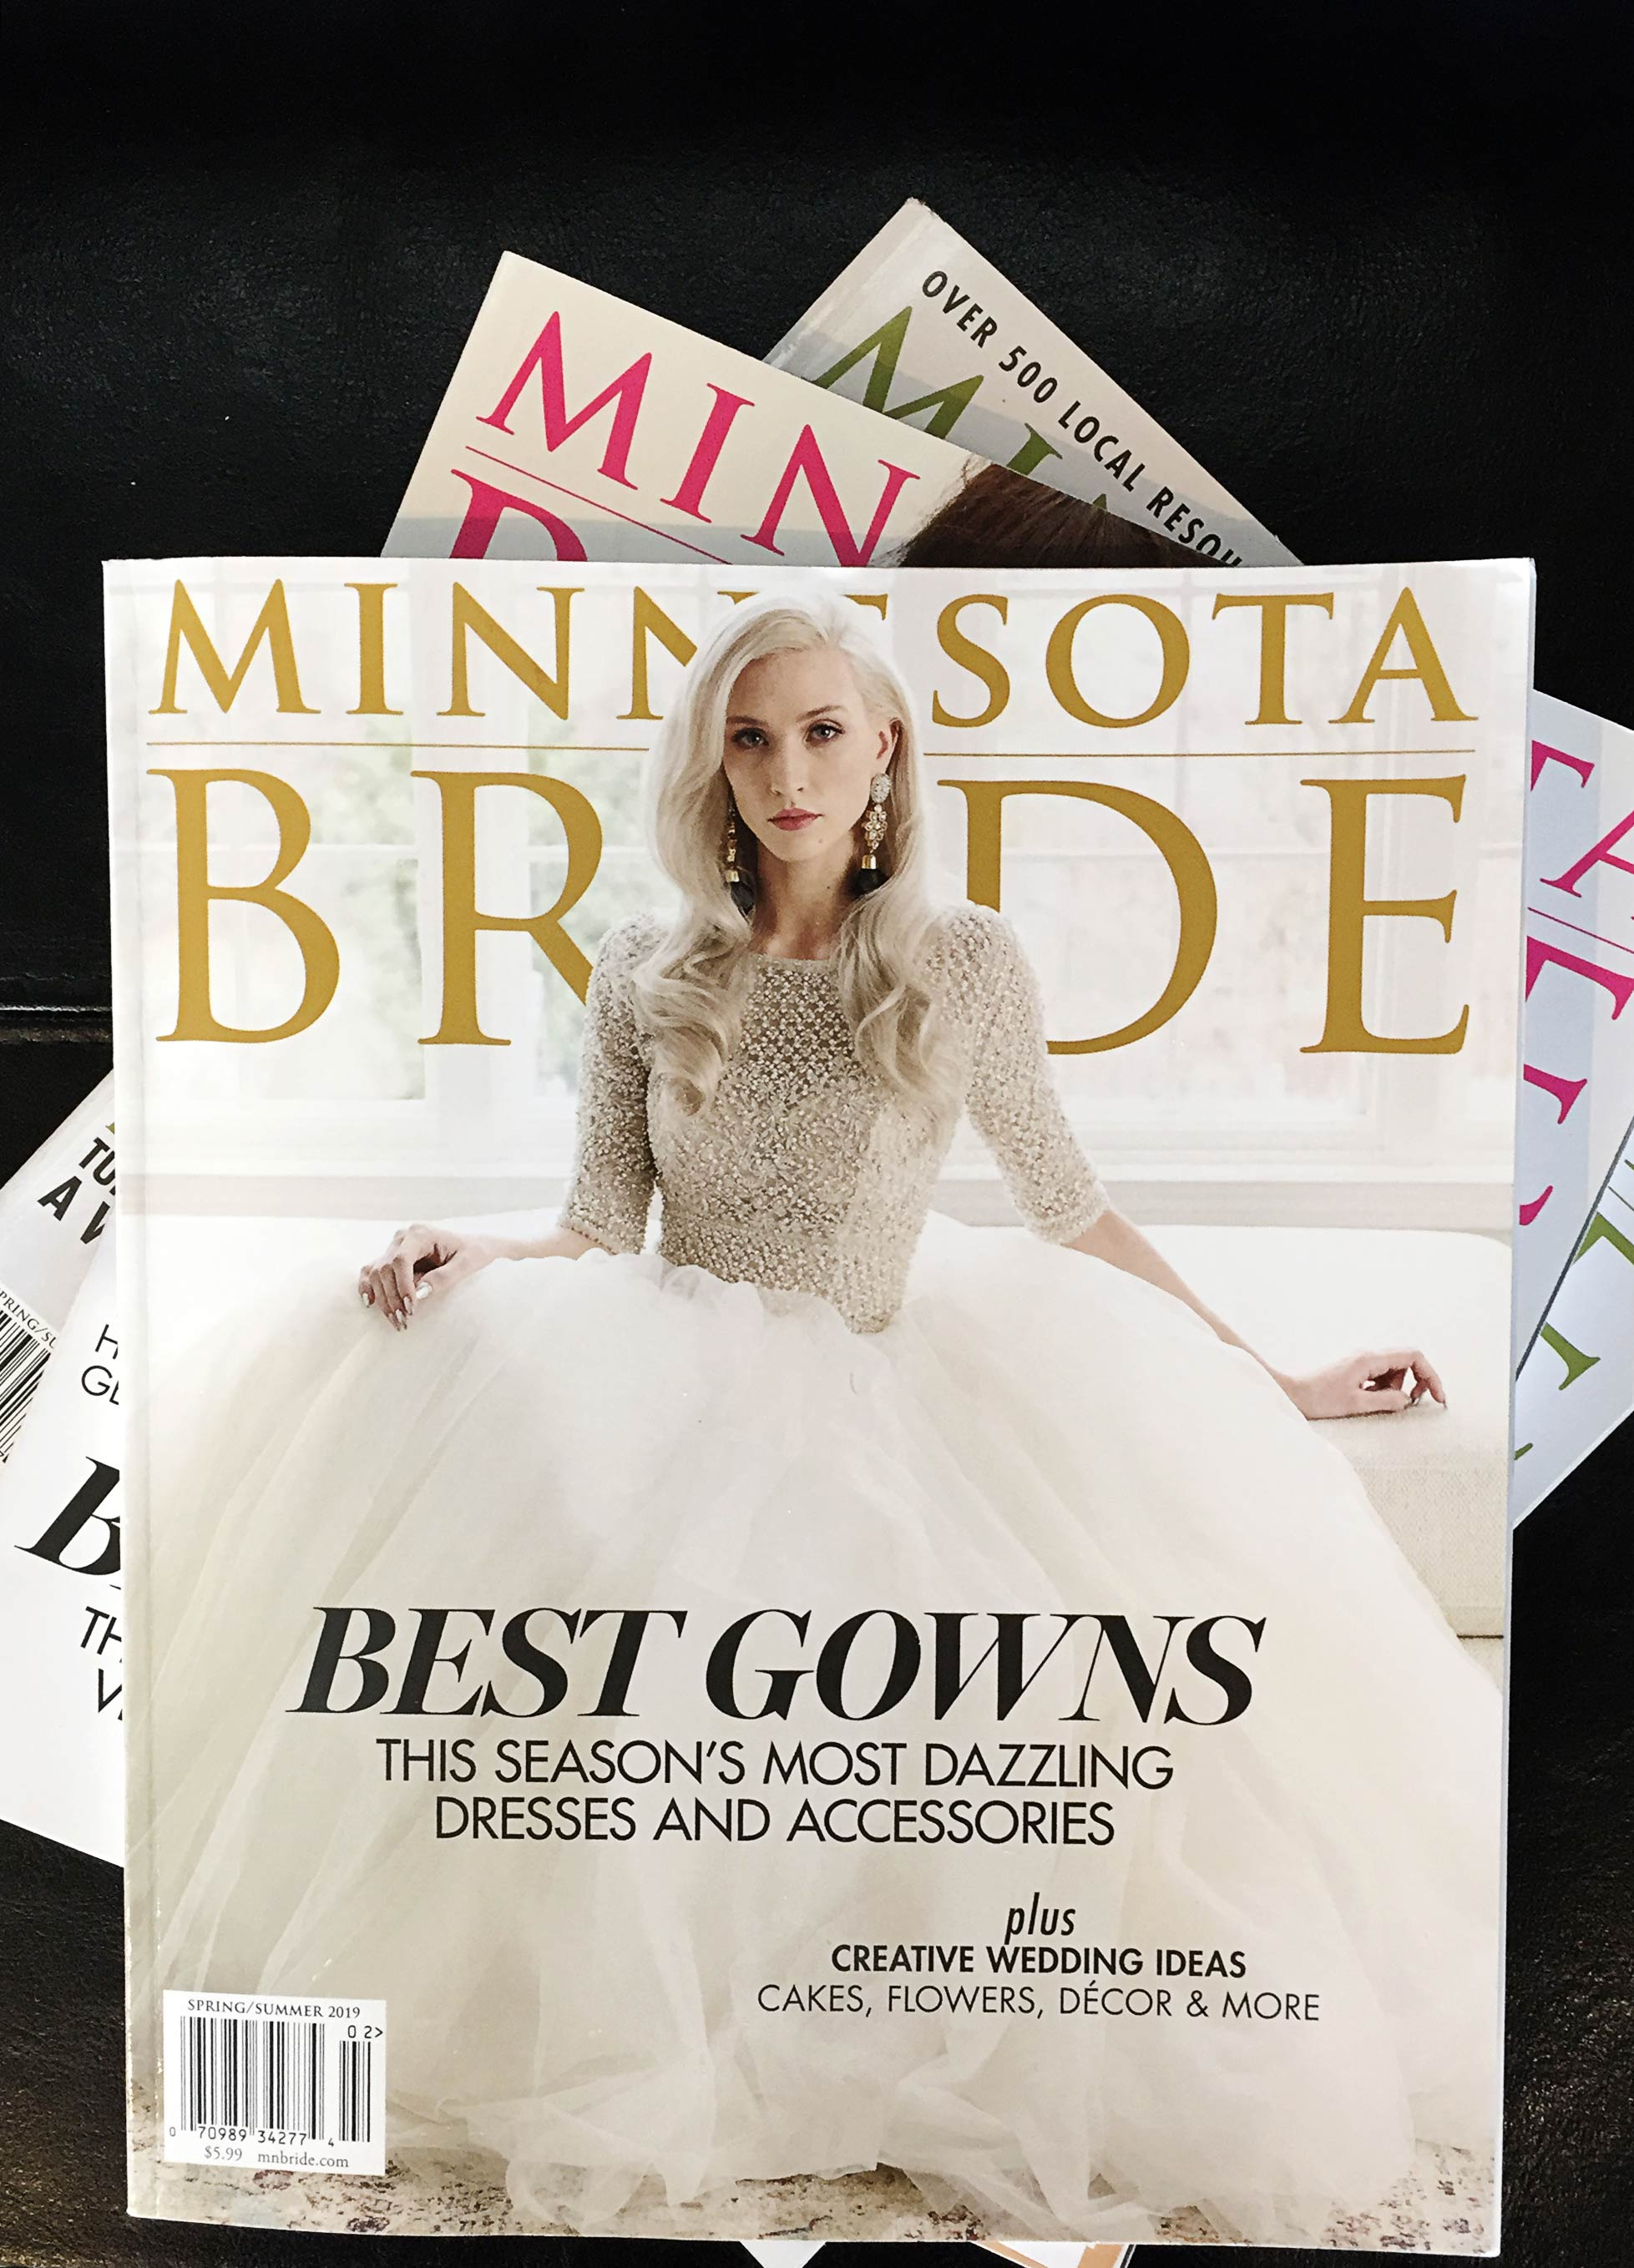 01-Minnesota-Bride-Magazine-Spring-2019-Cover-Vick-Photography-Feature.jpg